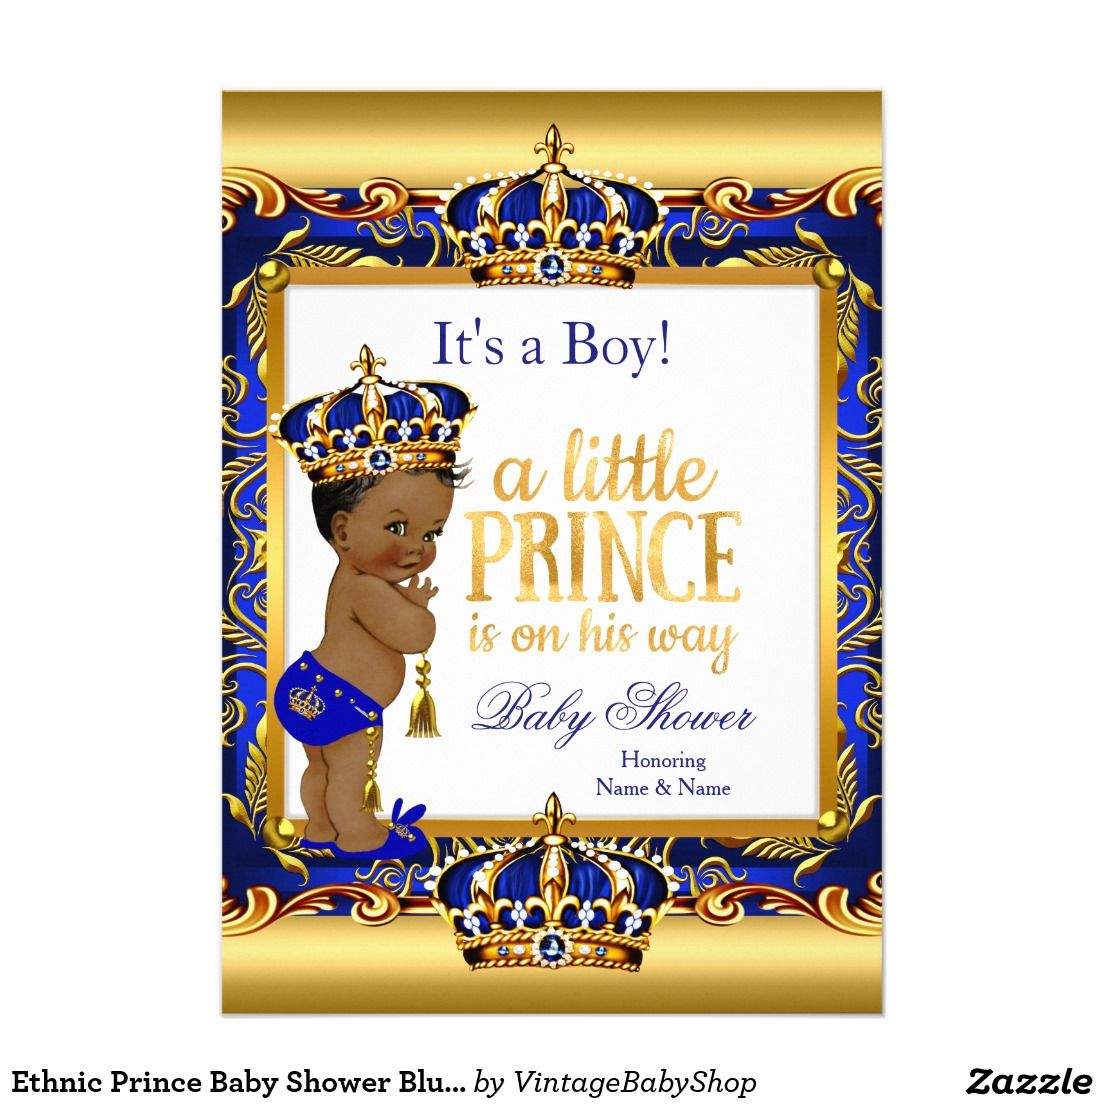 ethnic prince baby shower blue ornate gold card | blue gold prince, Baby shower invitations